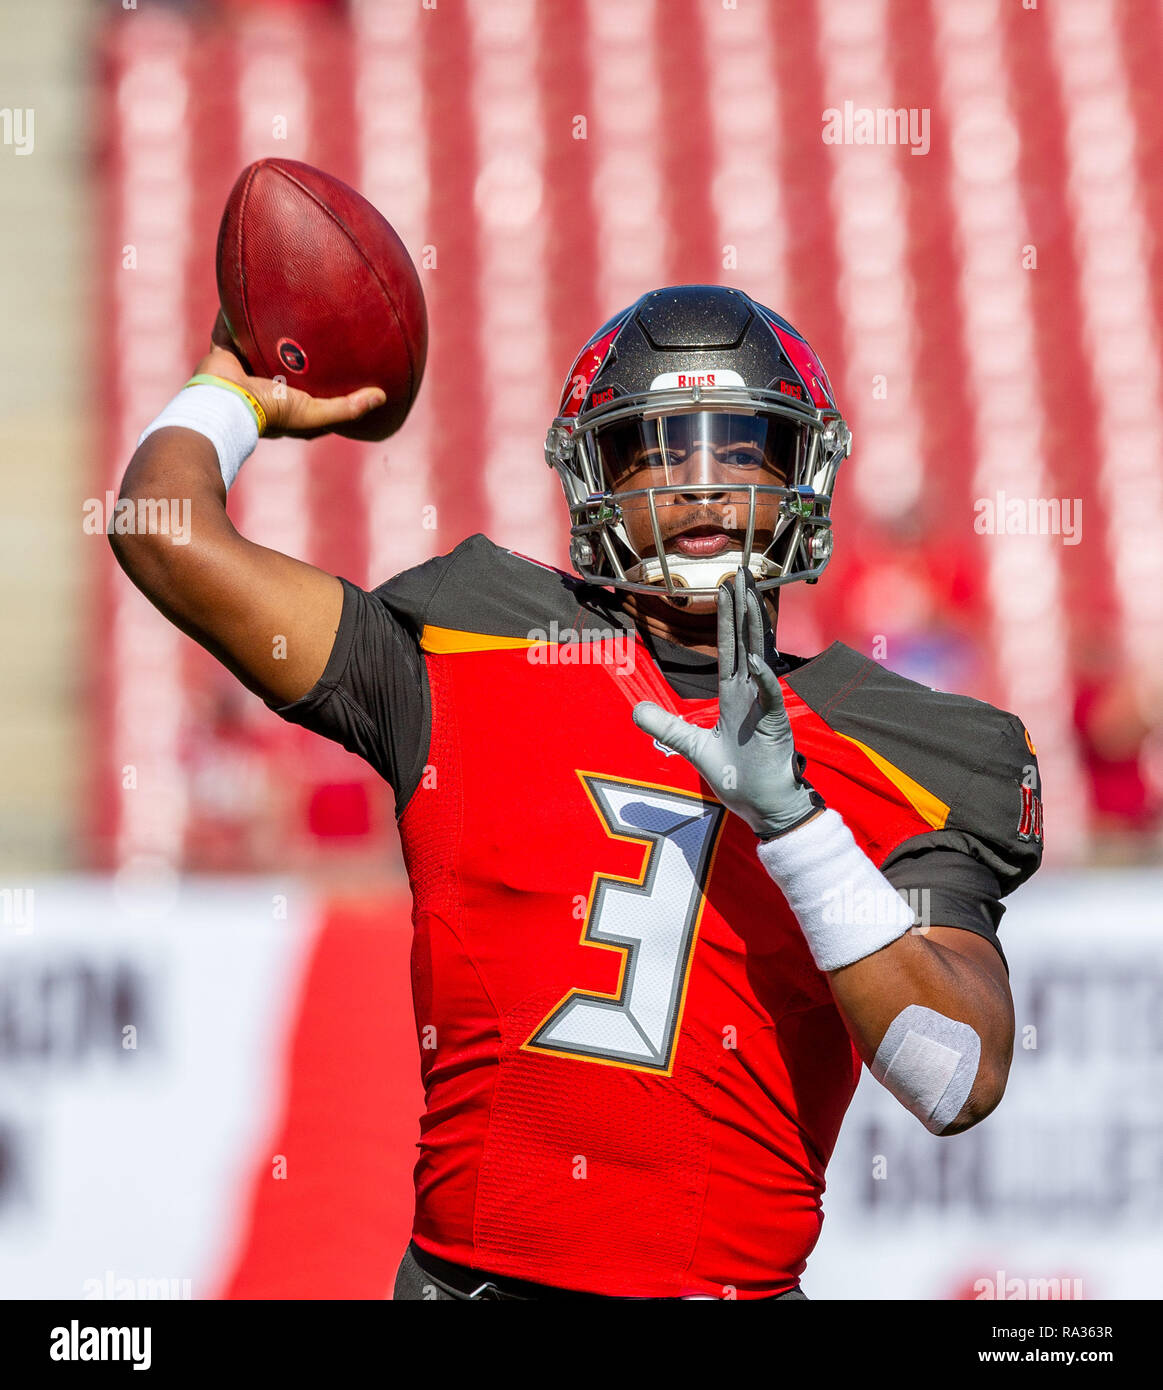 buy popular ad7e6 5e0b0 Tampa, Florida, USA. 30th Dec, 2018. Tampa Bay Buccaneers ...